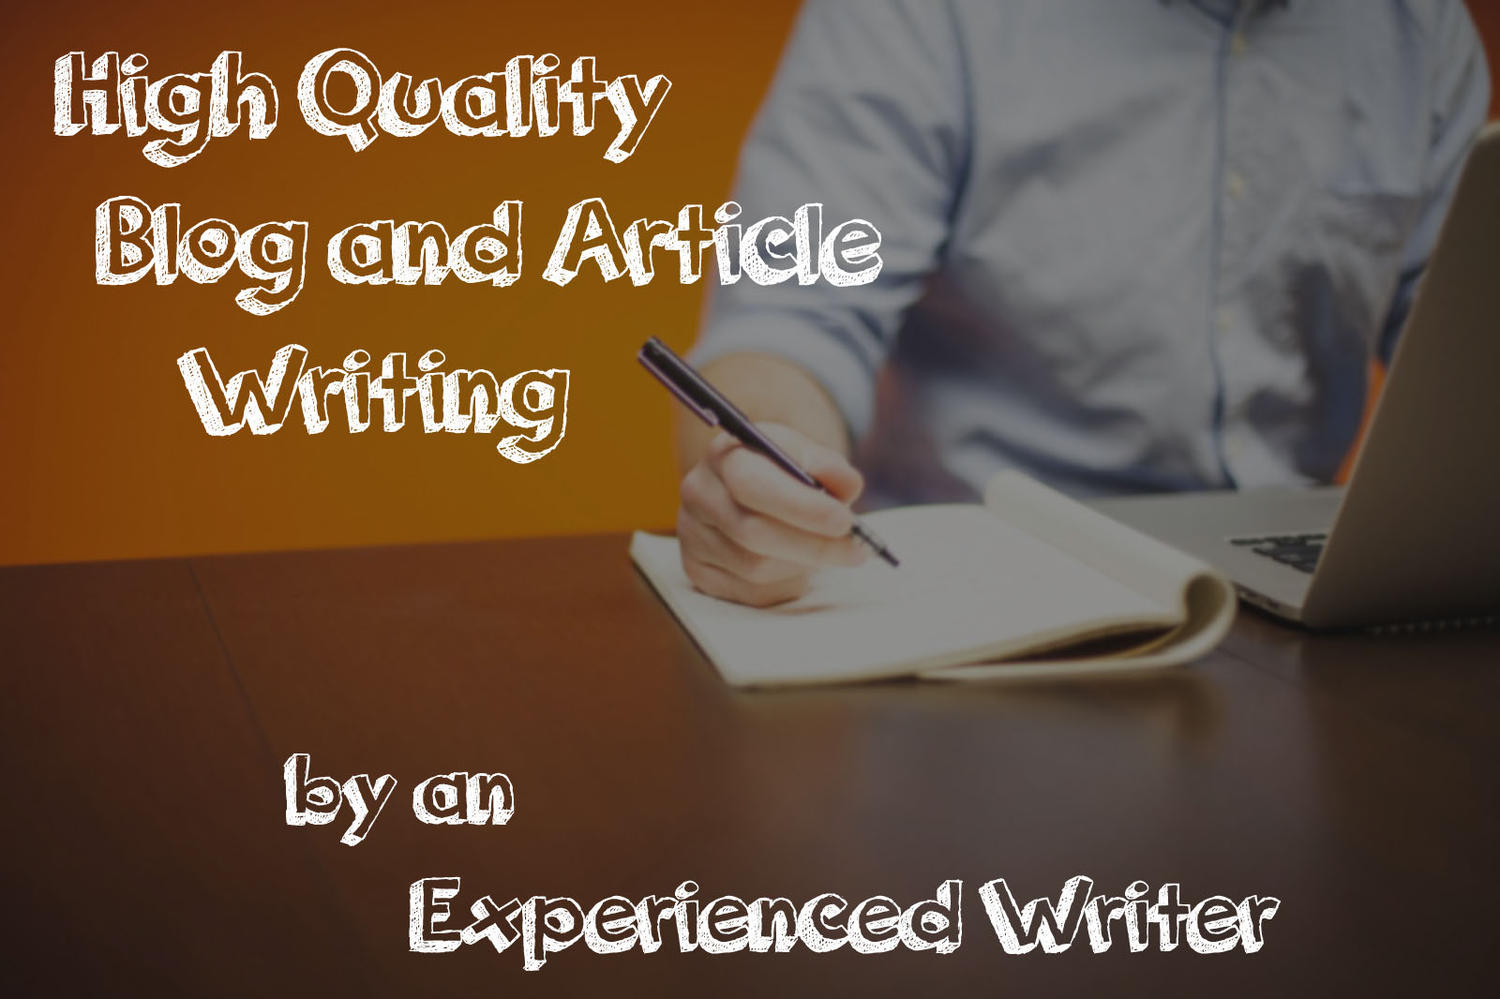 content copywriting services on envato studio original blog article and newsletter writing 700 1 000 words